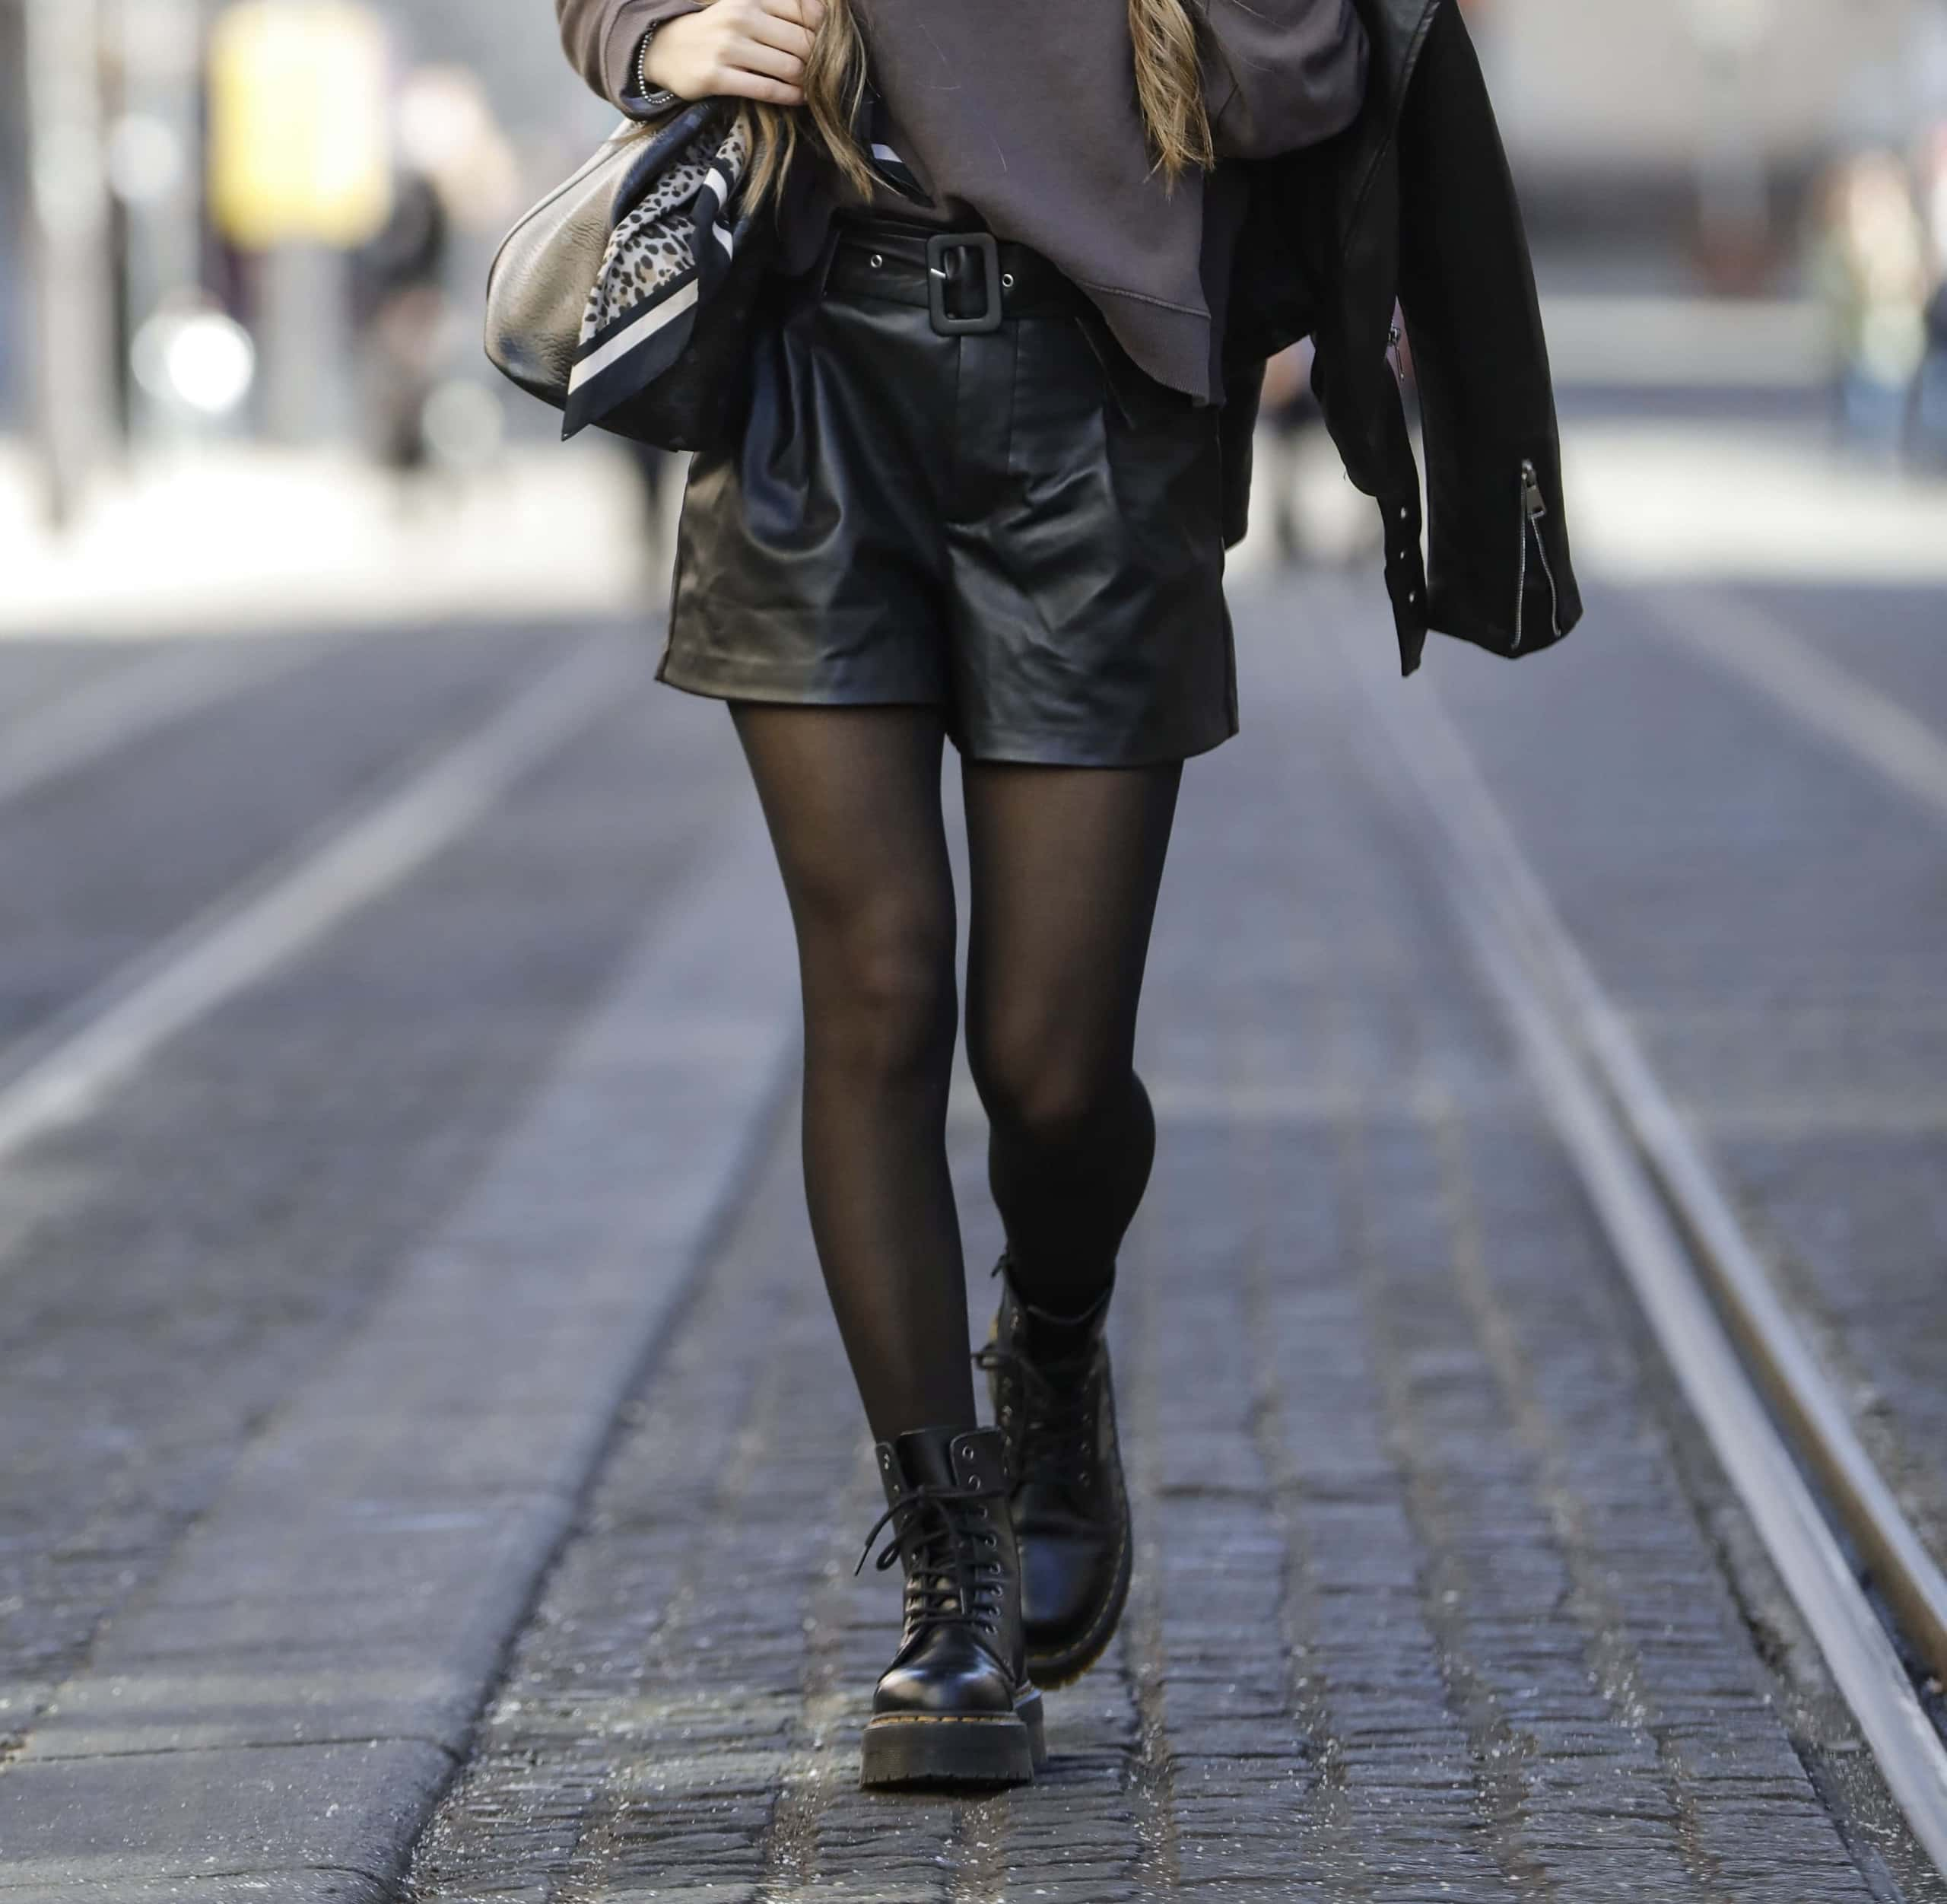 Streetstyleshooters/German Select/ Getty Images